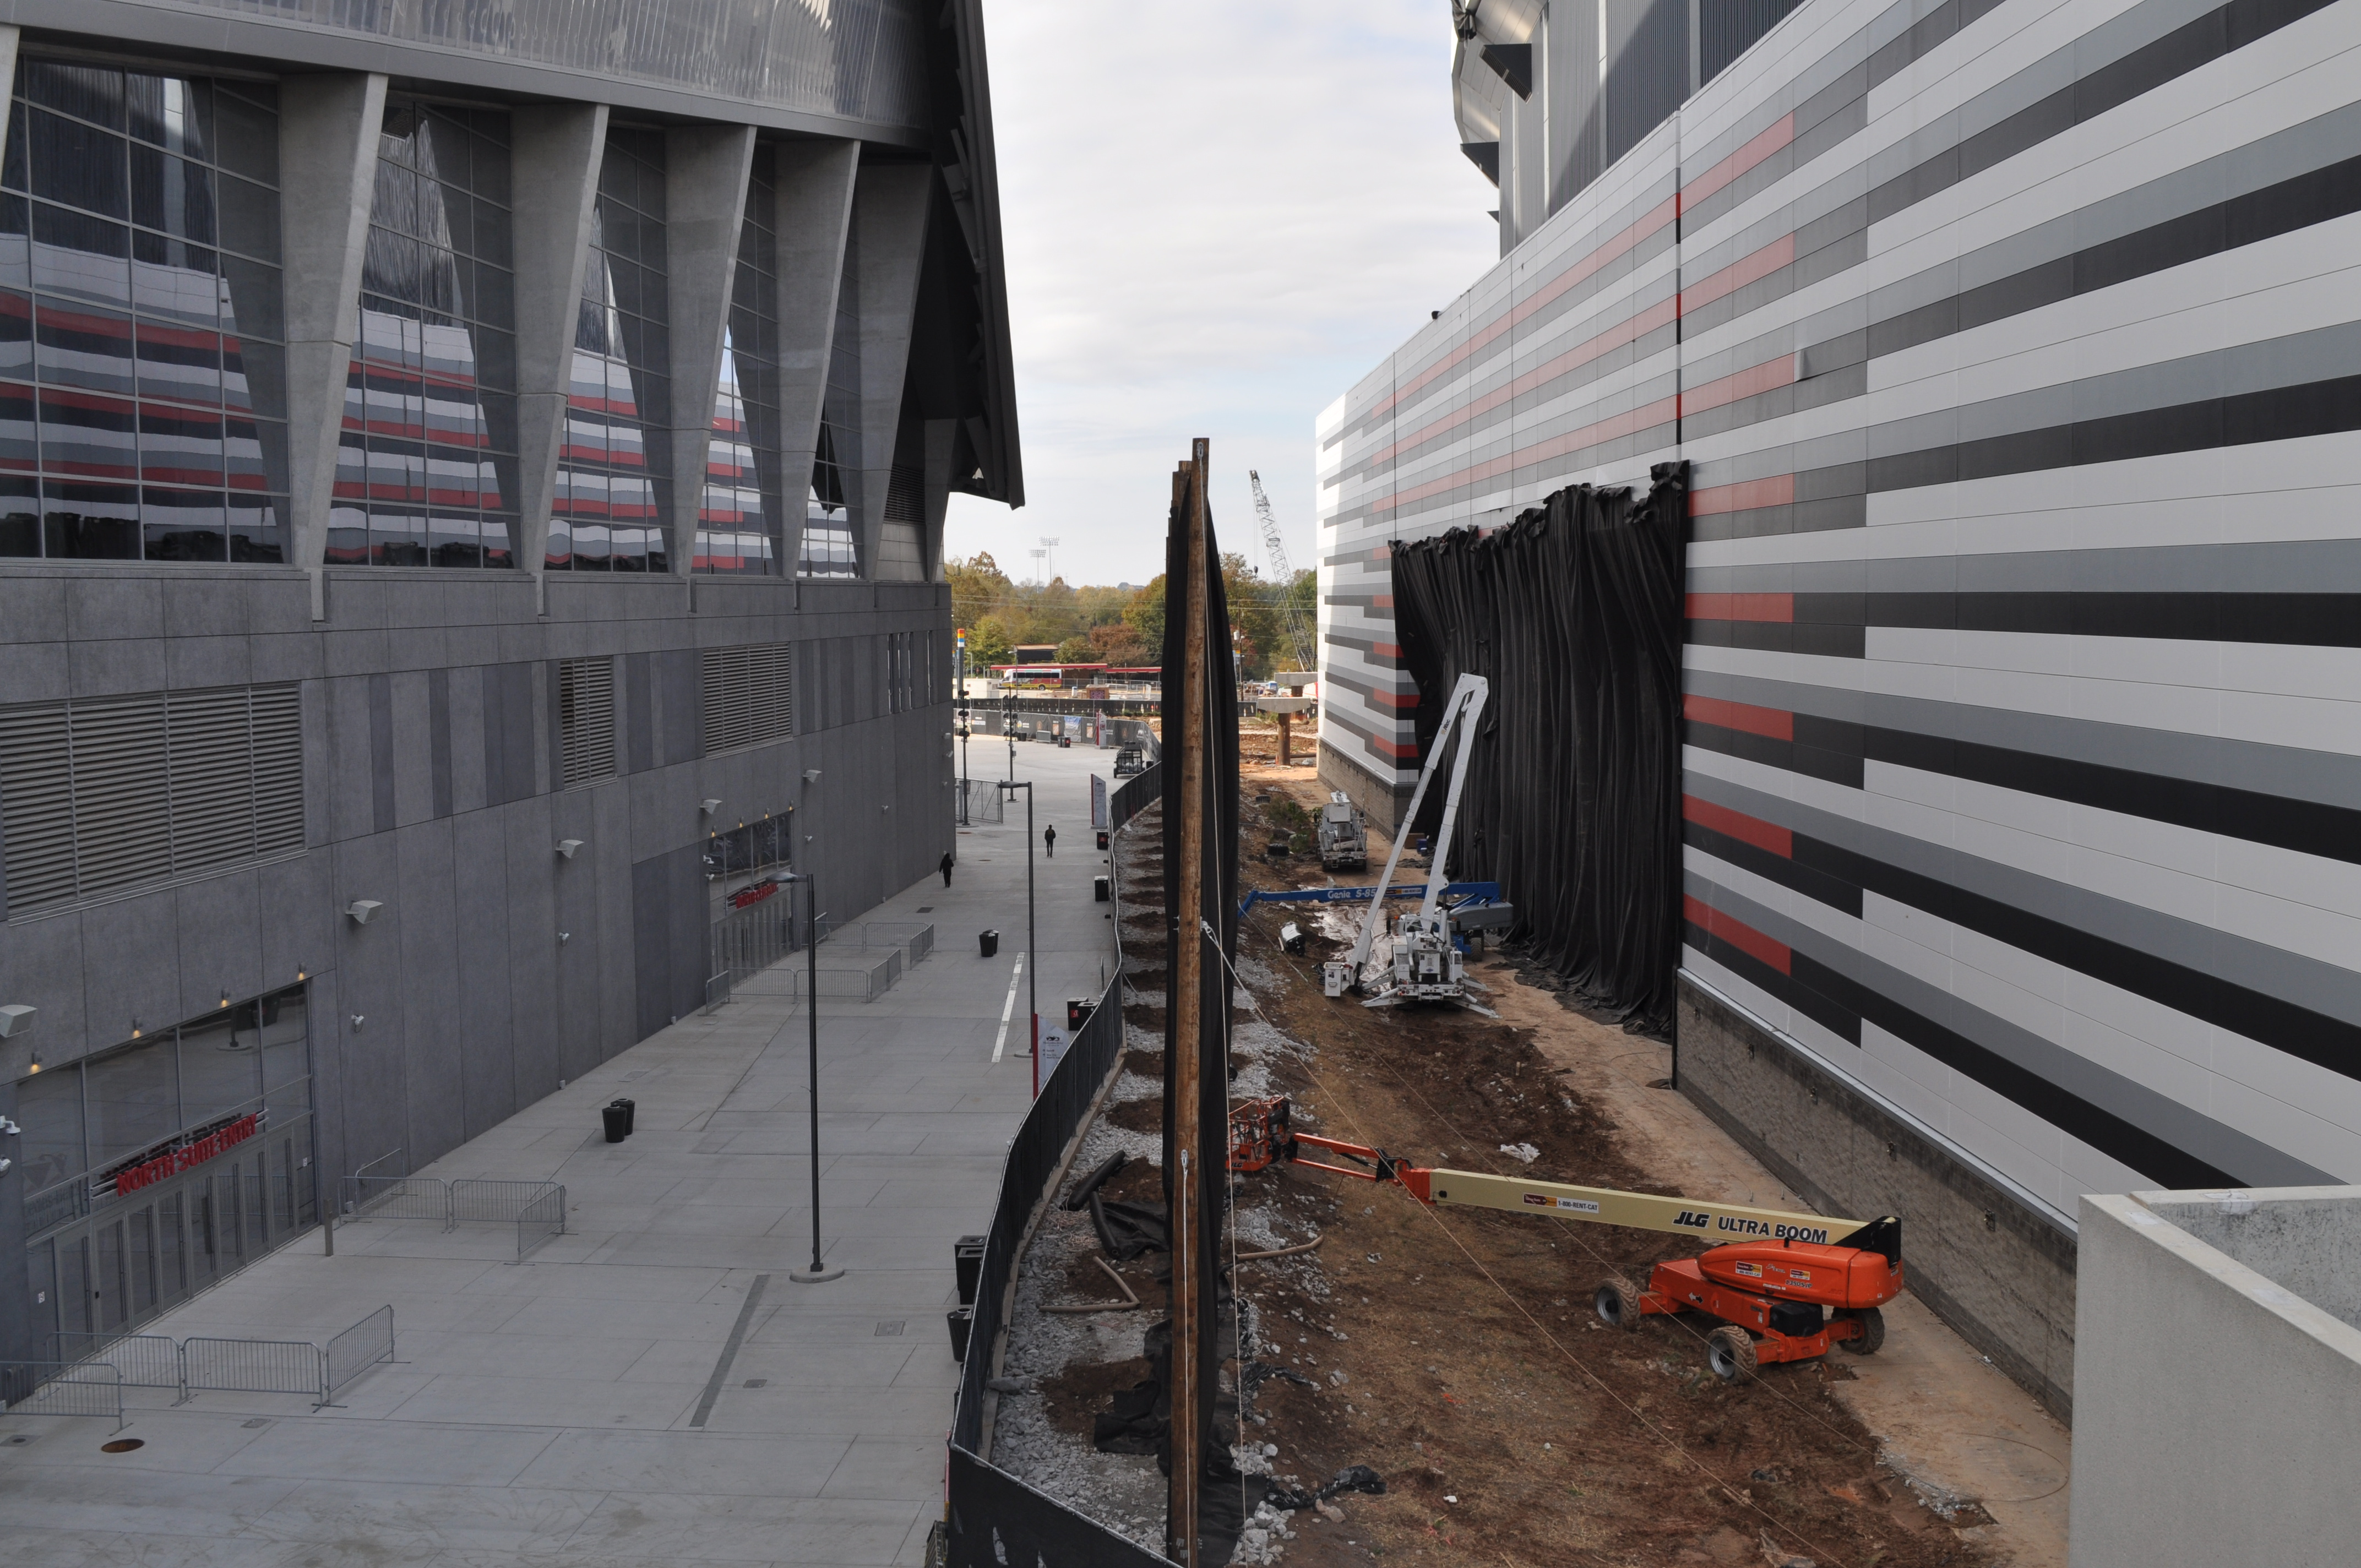 A tall fabric wall, strung between telephone poles, being built in the 30-foot gulf between the two stadiums.